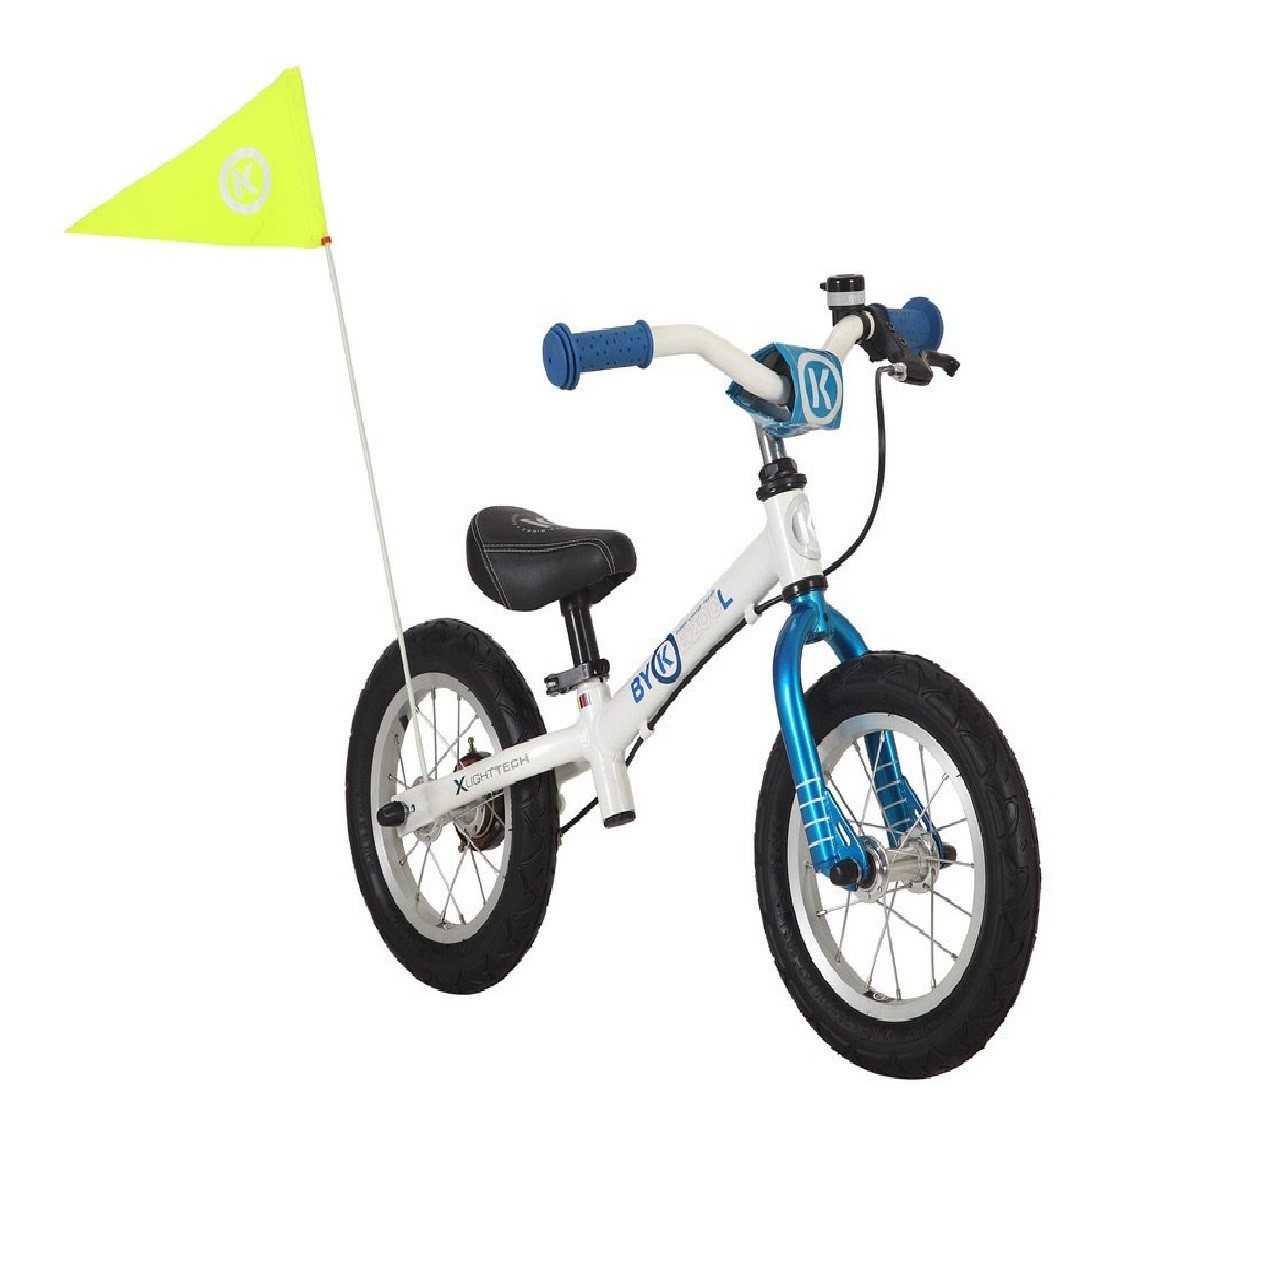 Boyercycling Byk Kids Balance Bike 149 99